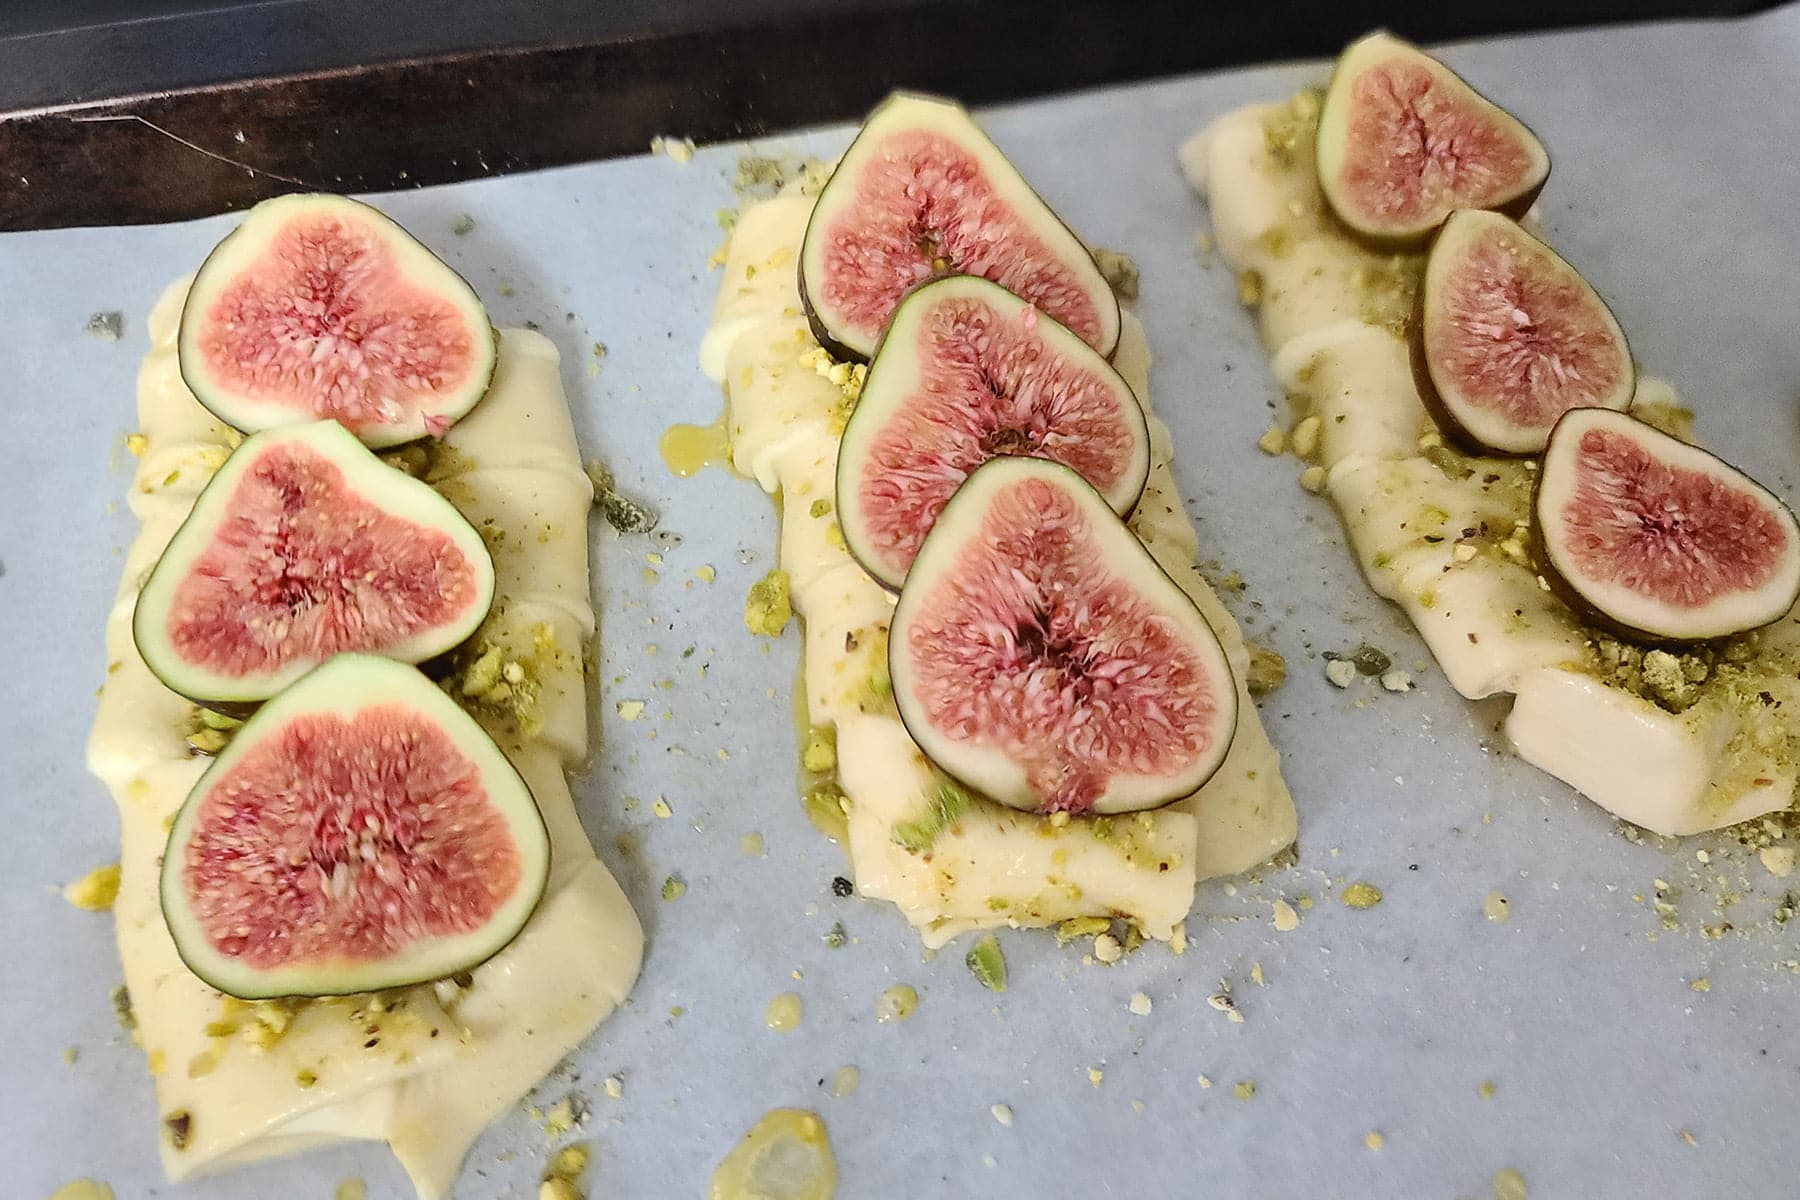 3 braided pastries are shown, each with a line of sliced figs arranged up the center.